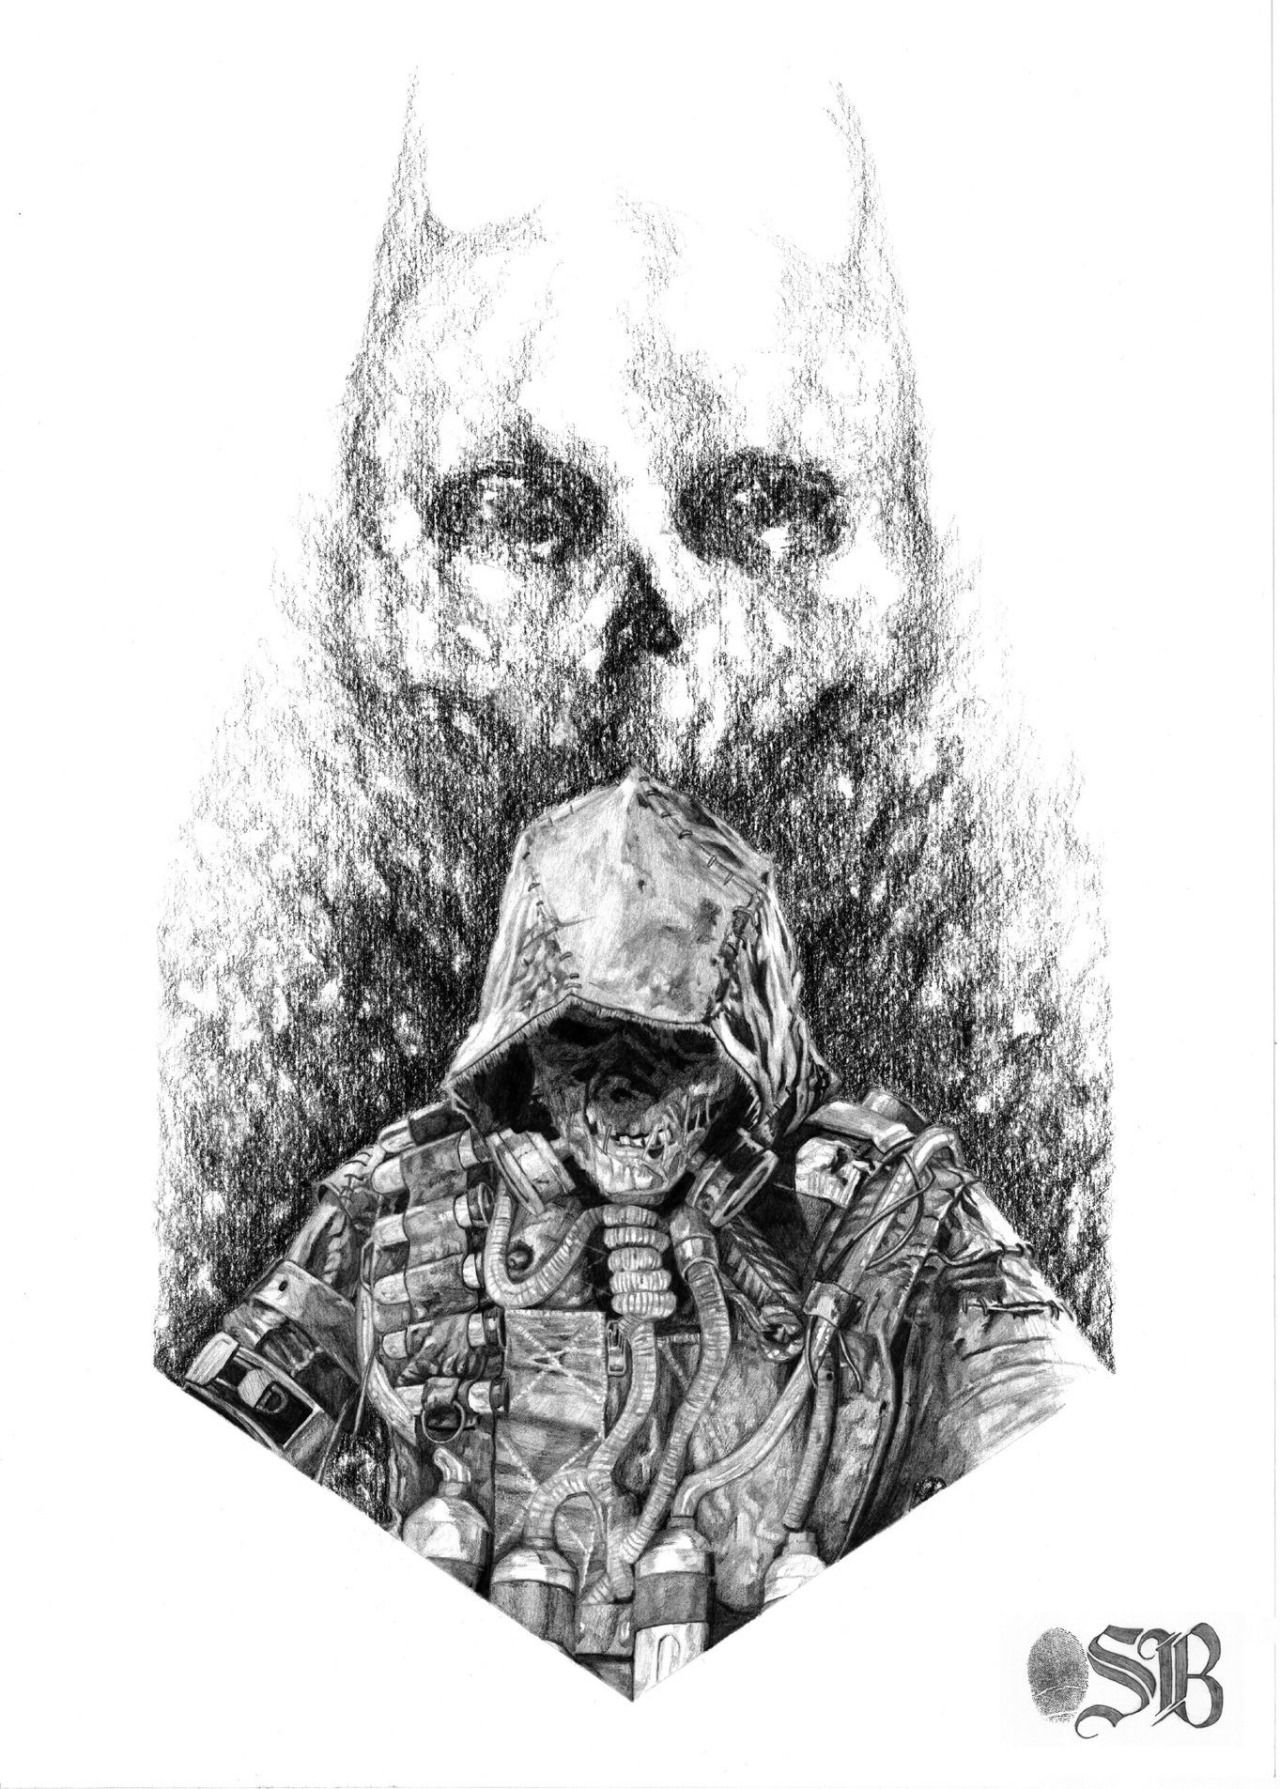 Pencil Drawing - Scarecrow from Batman Arkham Knight by Sam Brooks ...